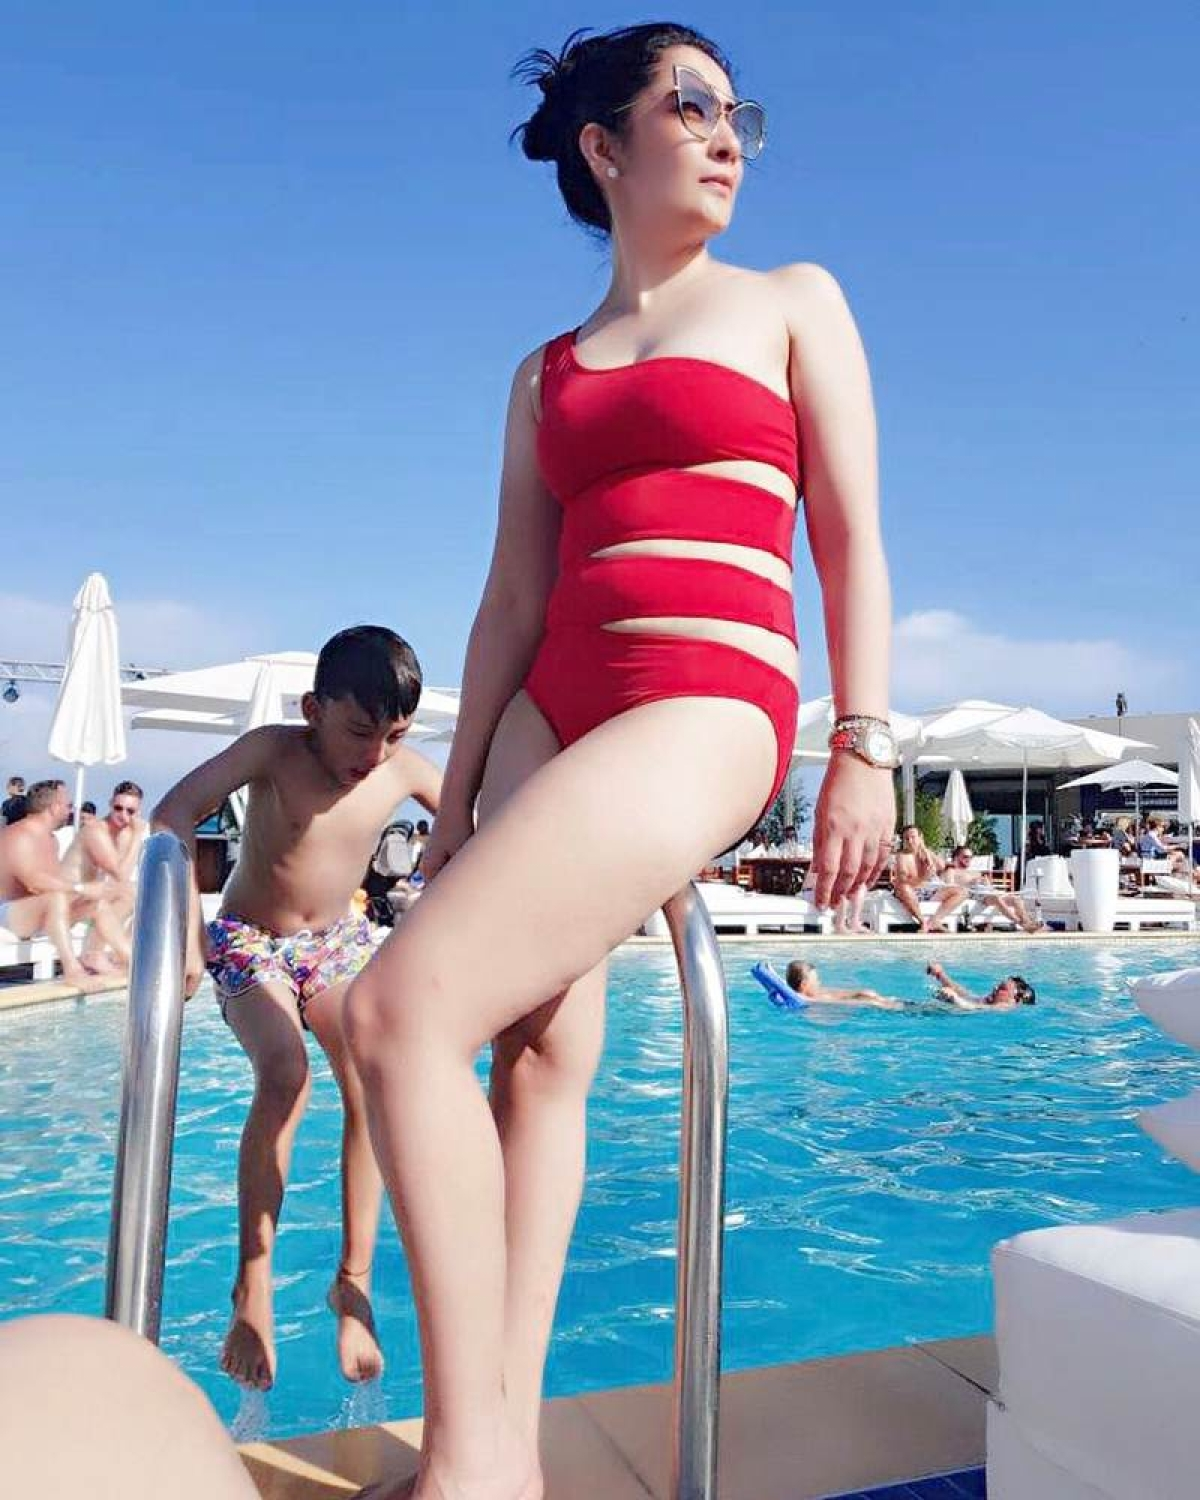 Pictures: Sanjay Dutt's wife Maanyata turns the heat in red hot swimsuit